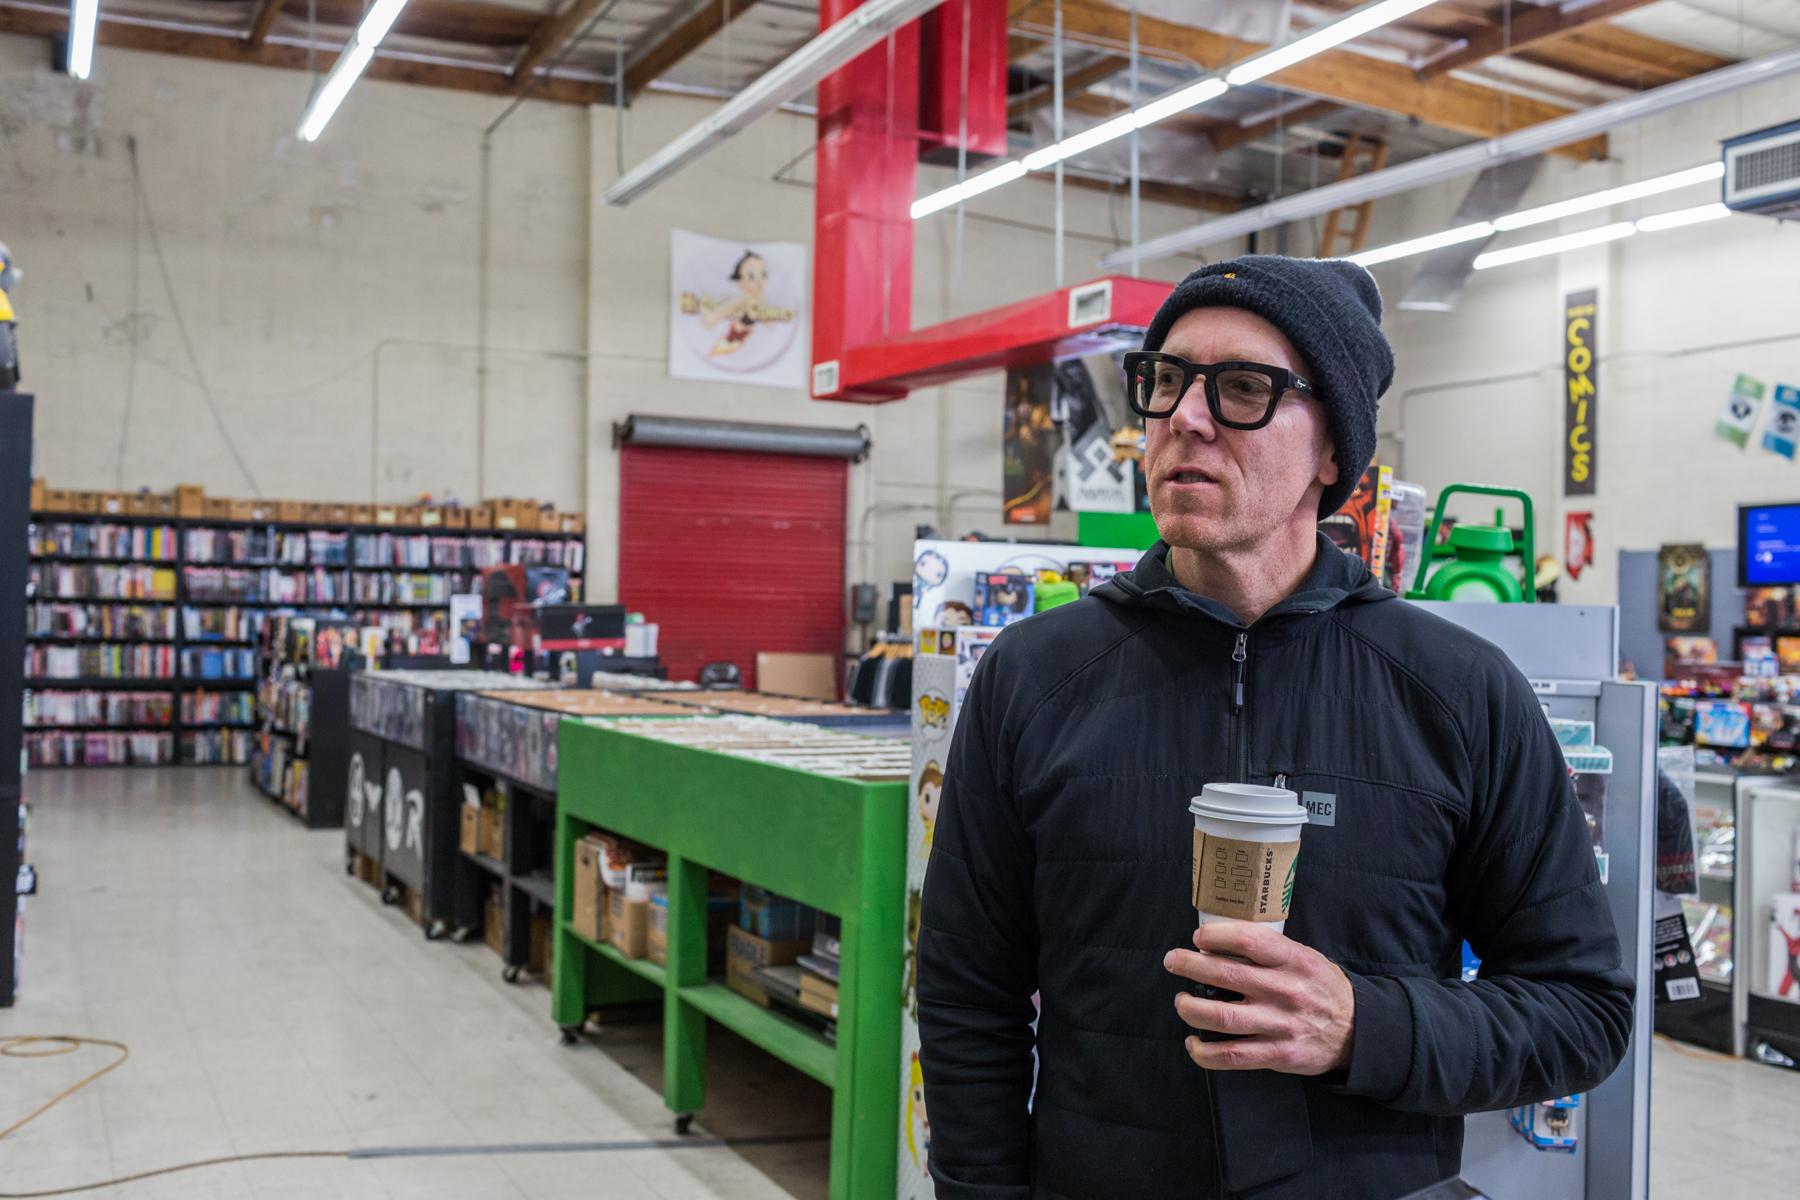 Director Ted Mcneilage browses through the graphic novels and comic books at HI DE HO comics in Santa Monica, CA on Thursday March 1 2018. He and his family have all seen the Black Panther movie and think it's a huge step forward for diversity in film. (Photo by Ruth Iorio)